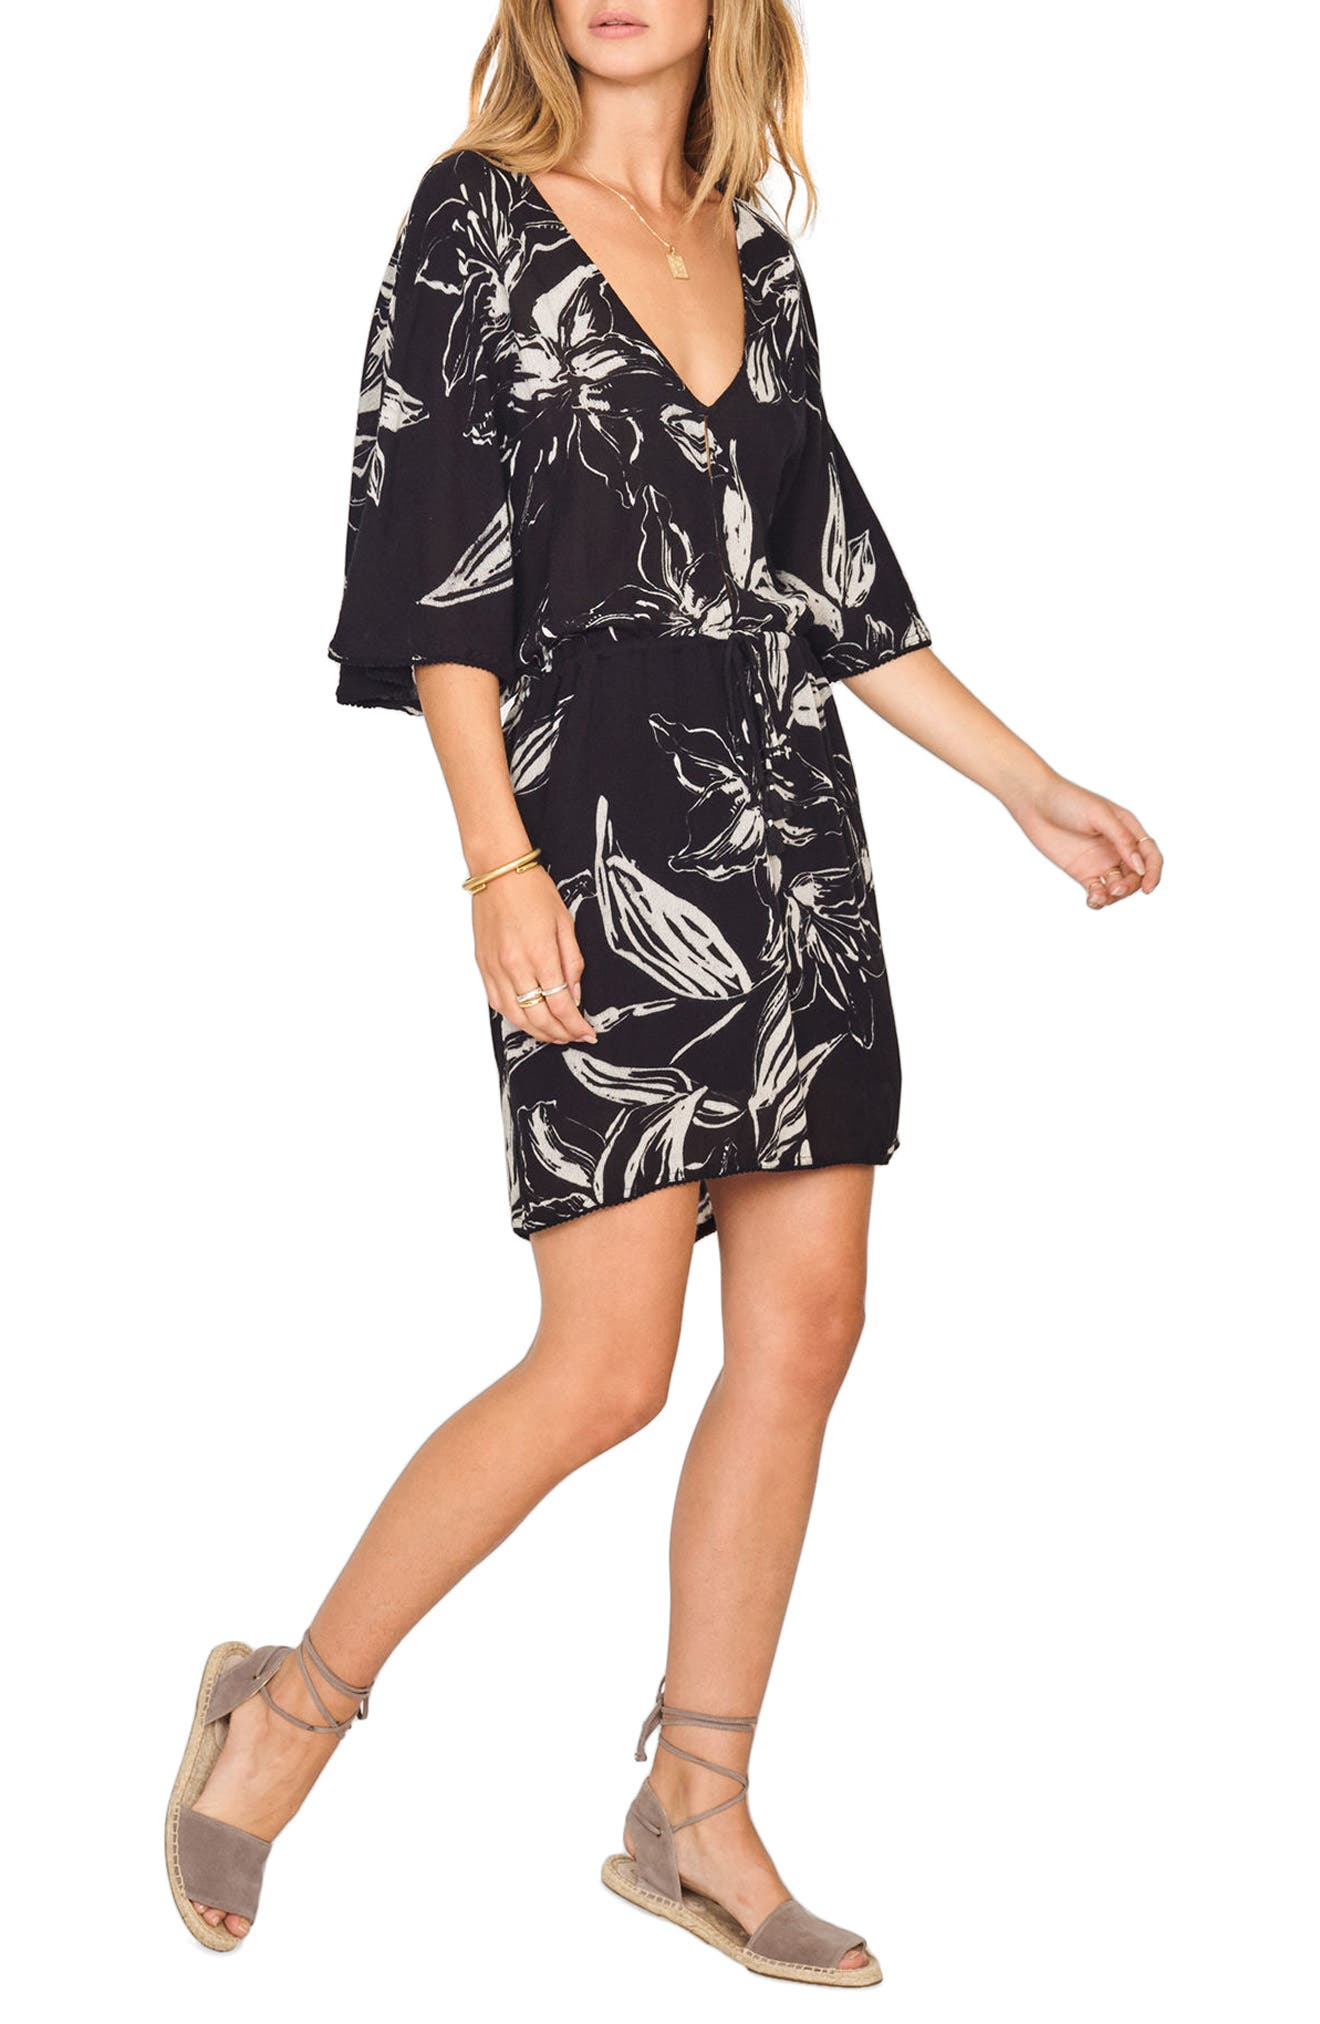 Cross My Heart Floral Print Dress,                             Main thumbnail 1, color,                             001